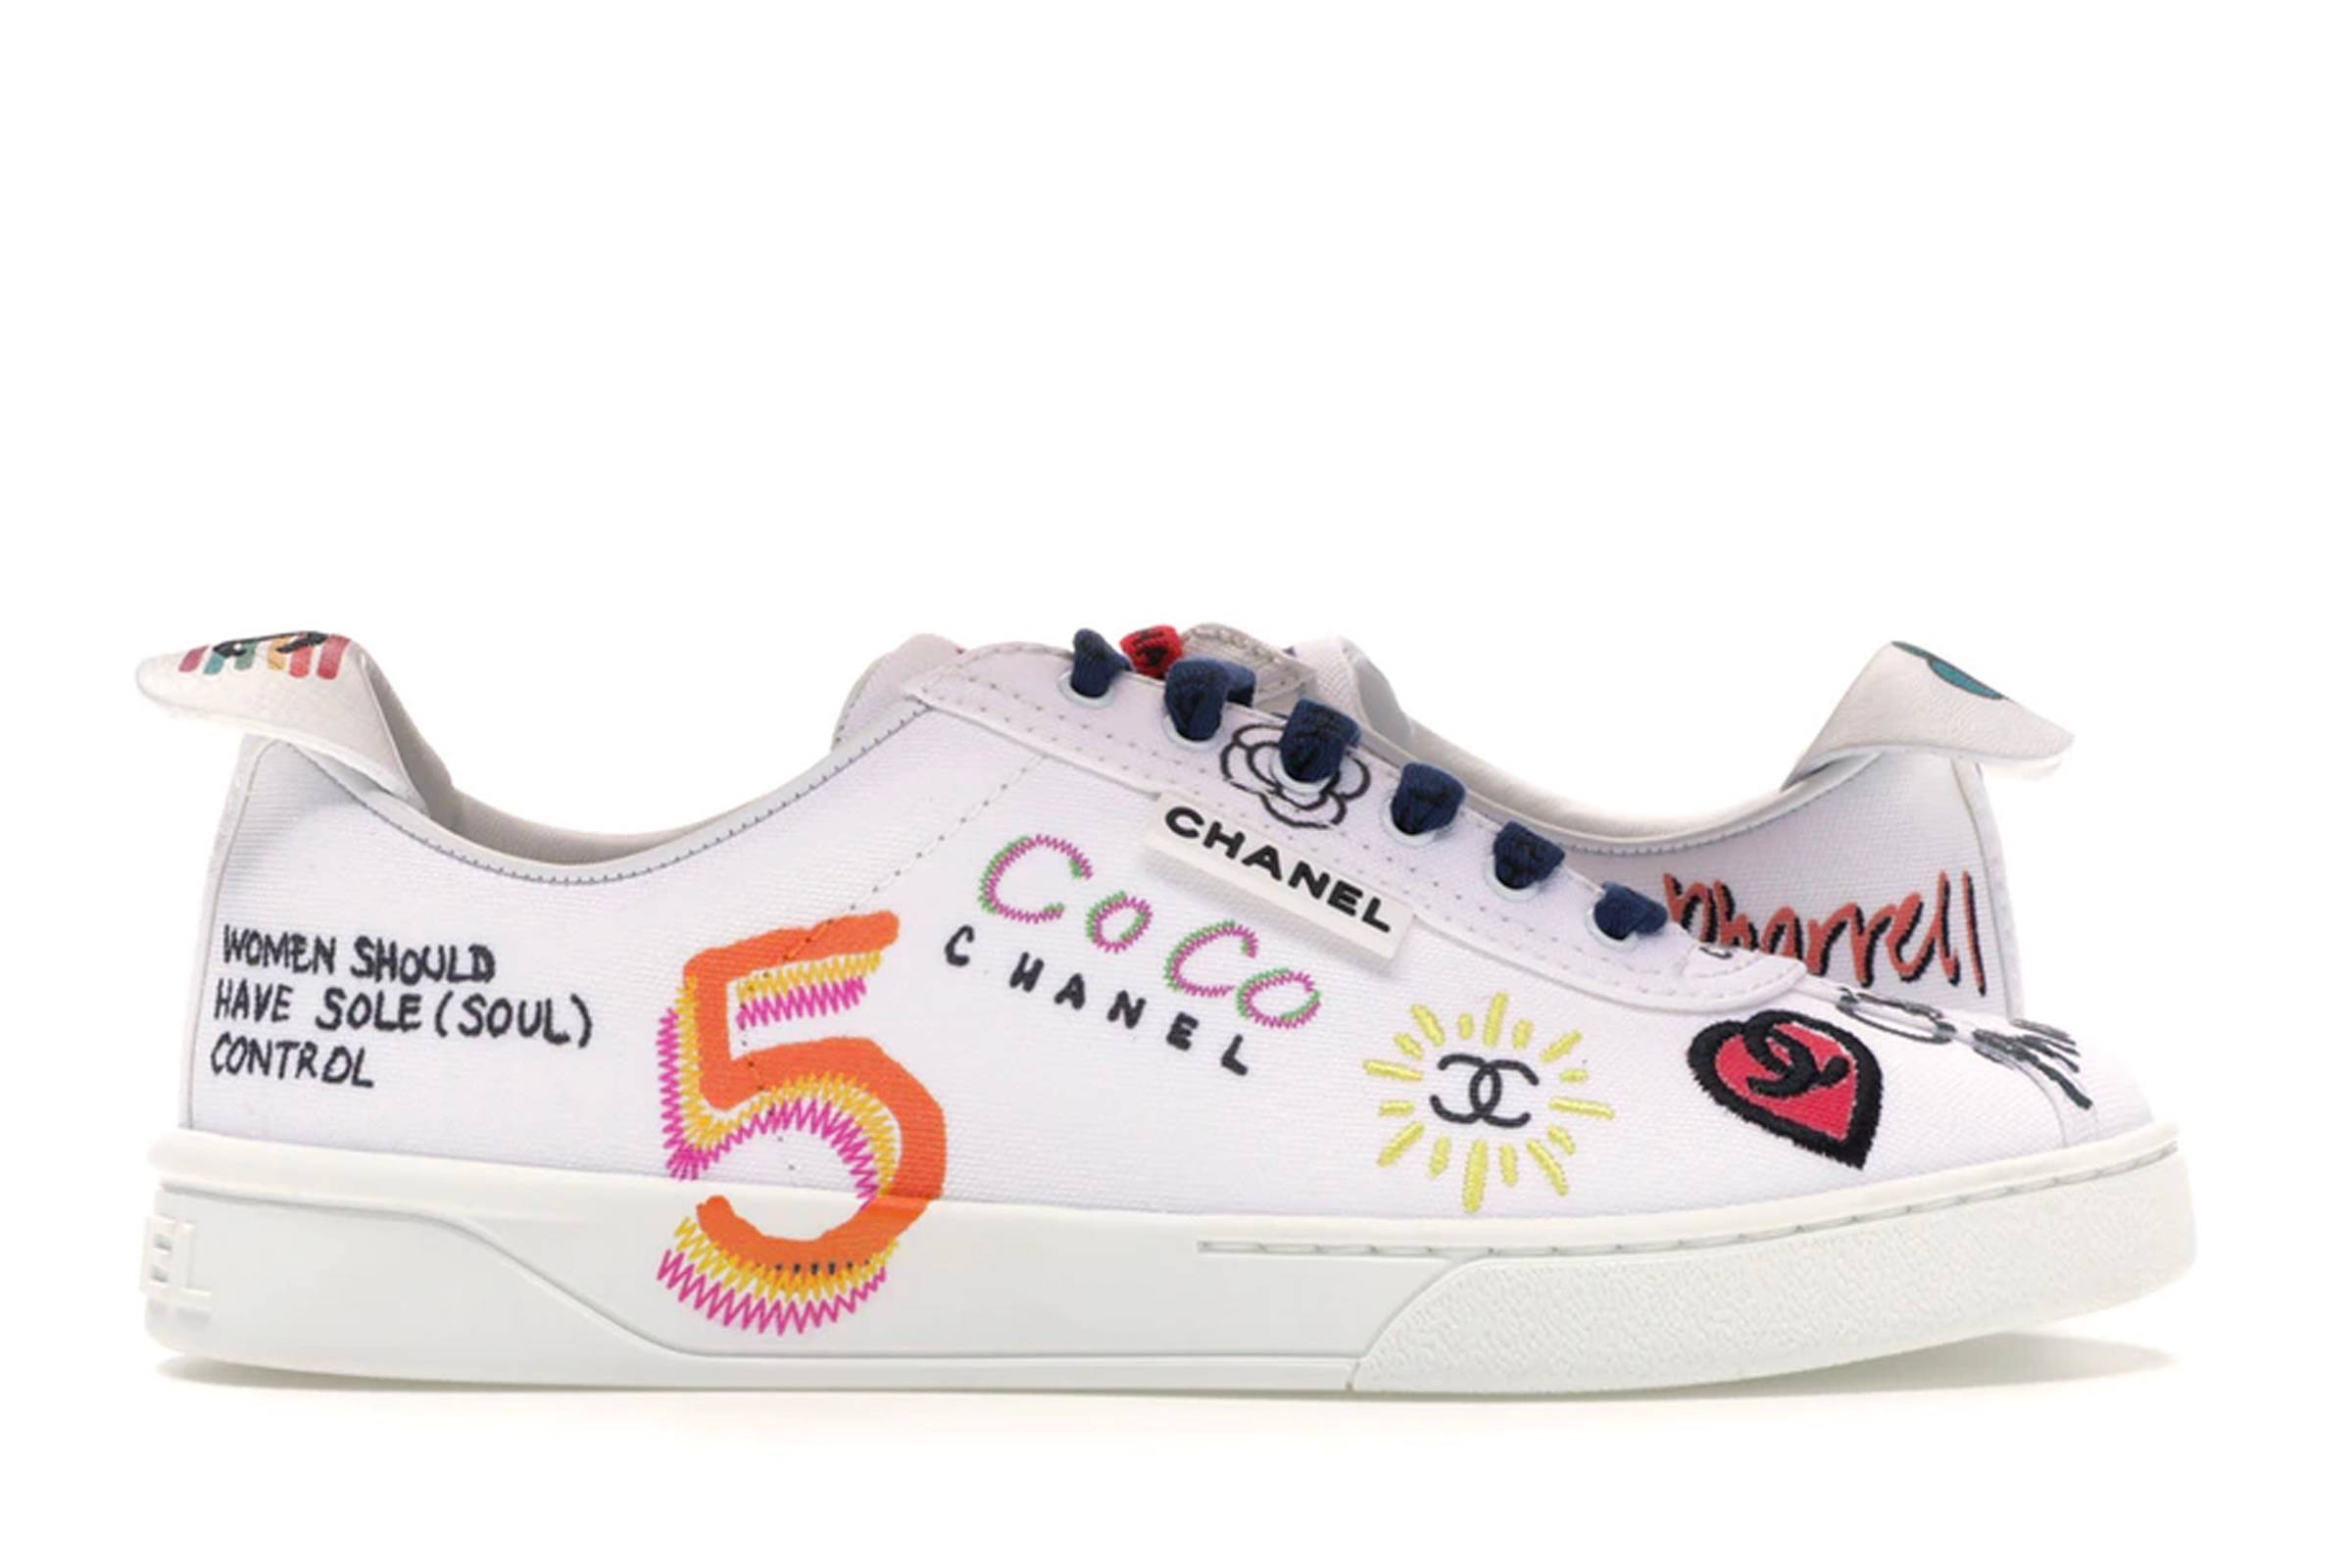 Chanel Pharrell Graffiti Sneakers